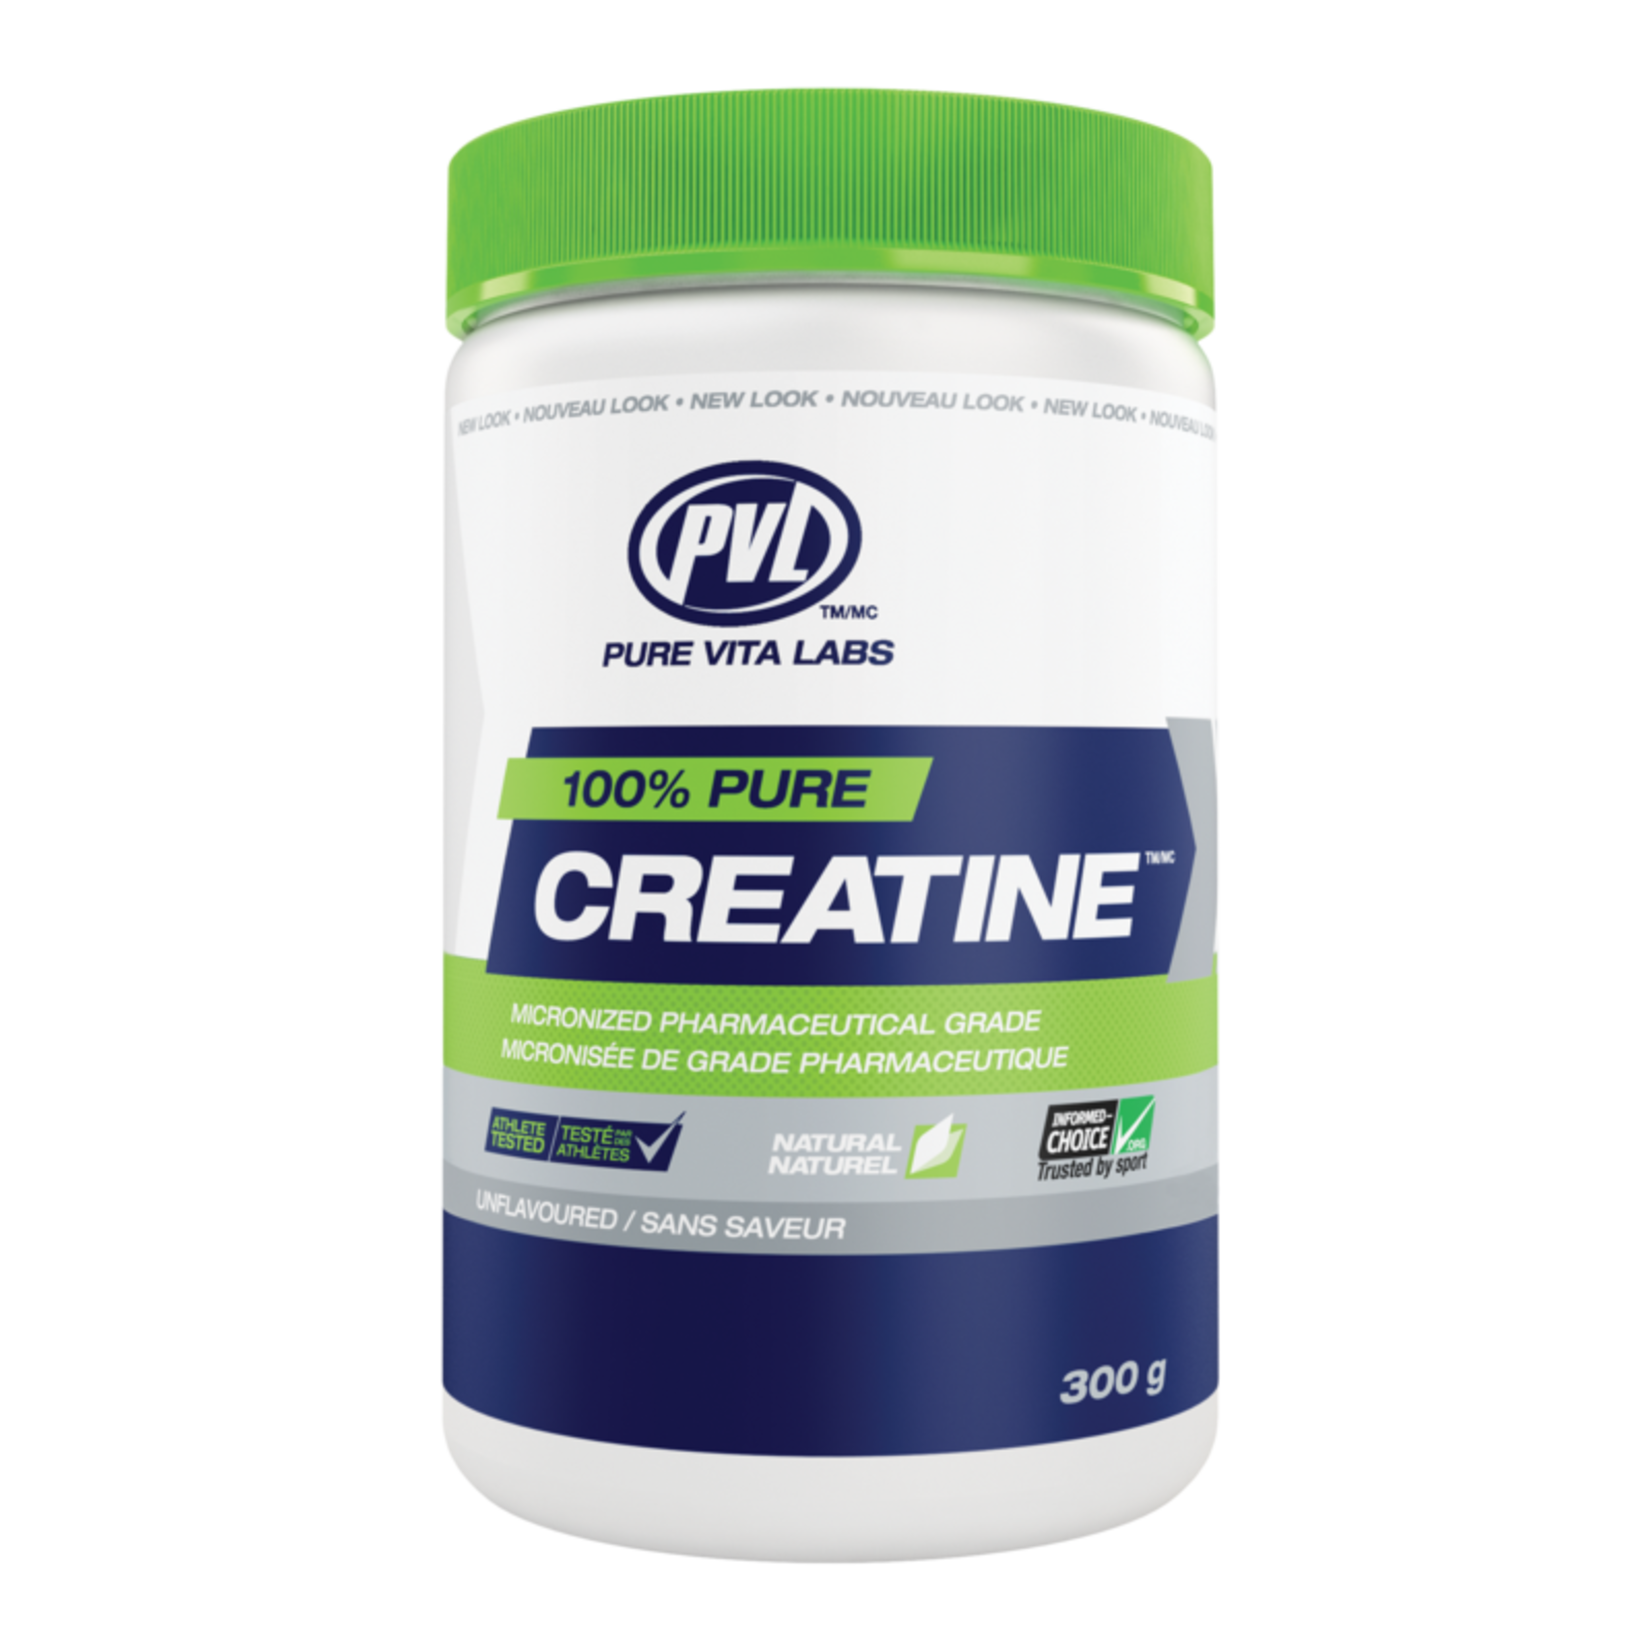 Pure Vita Labs 100% Pure Creatine 300g